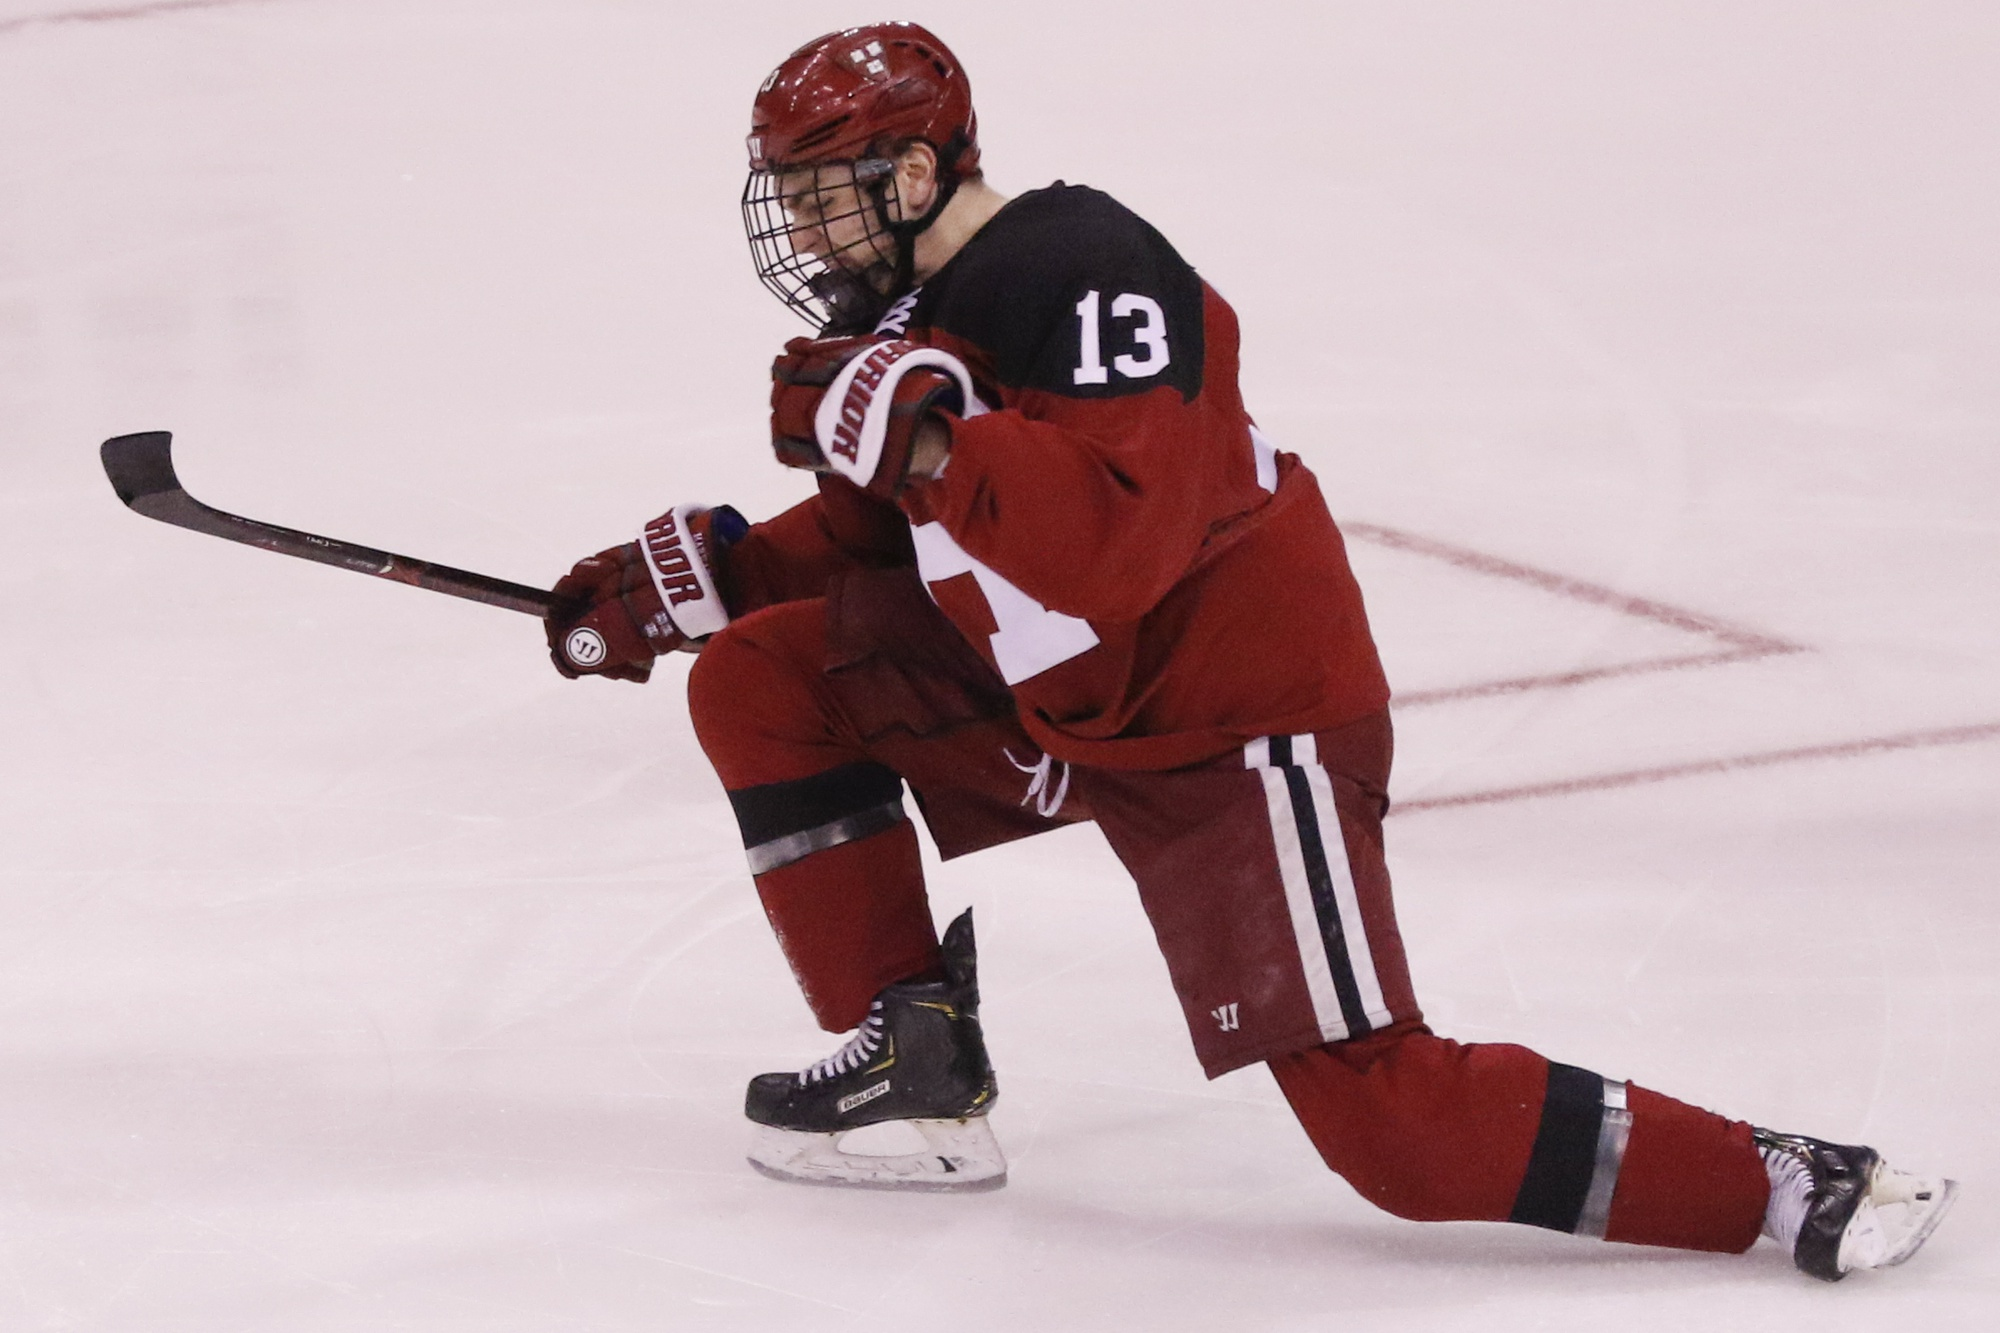 Nathan Krusko will lead the forward ranks next season, drawing on his experience battling back from double hip surgery to infuse the group with determination.